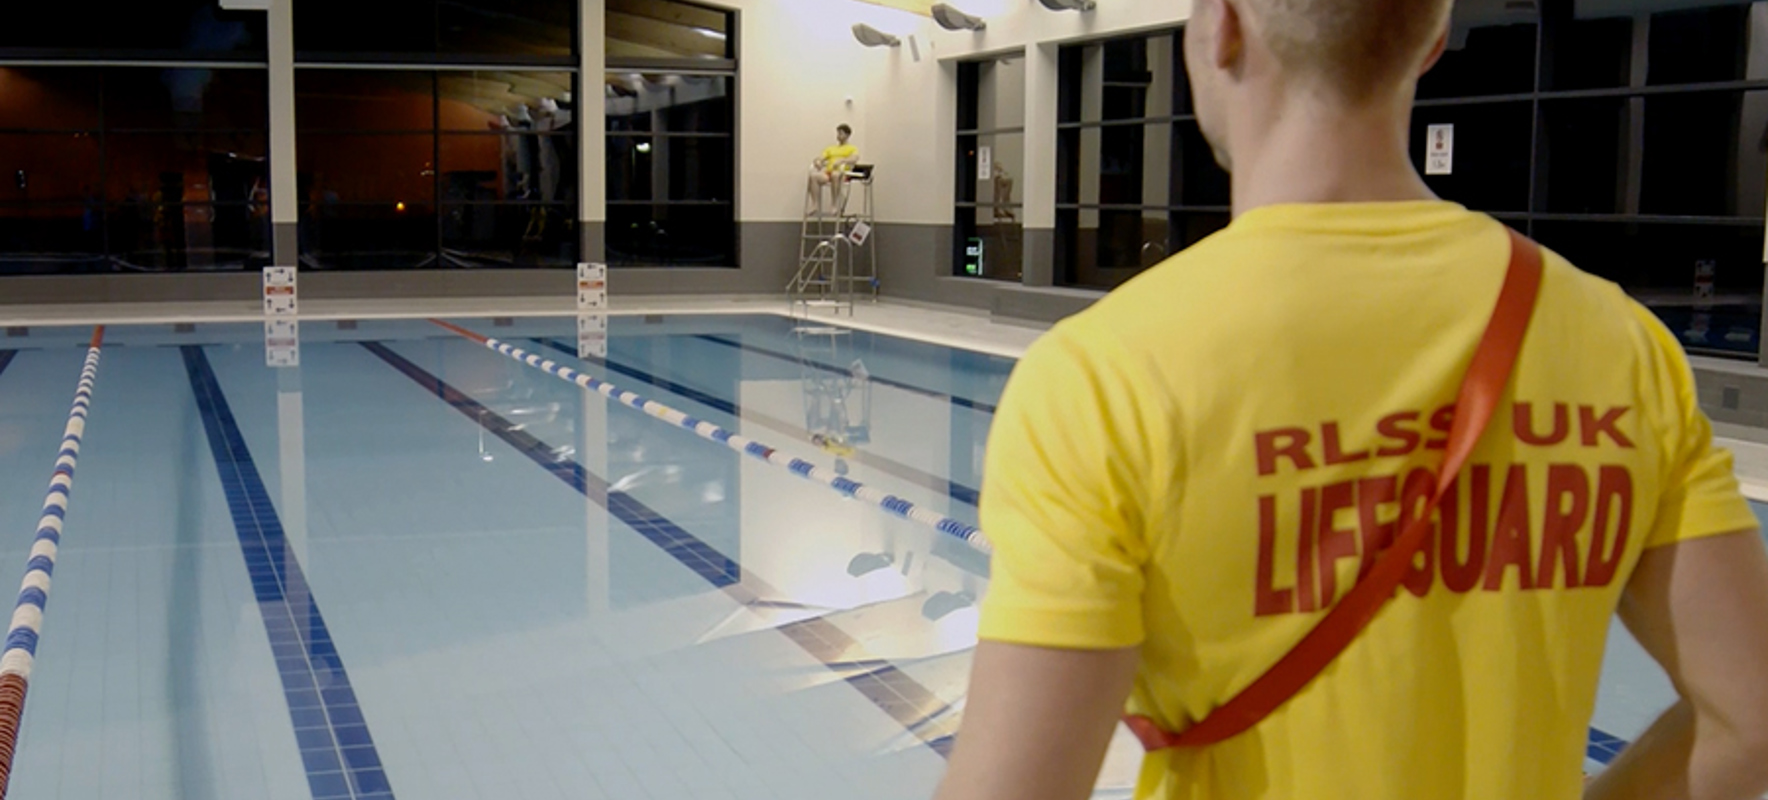 RLSS UK launches campaign to tackle lifeguard shortage